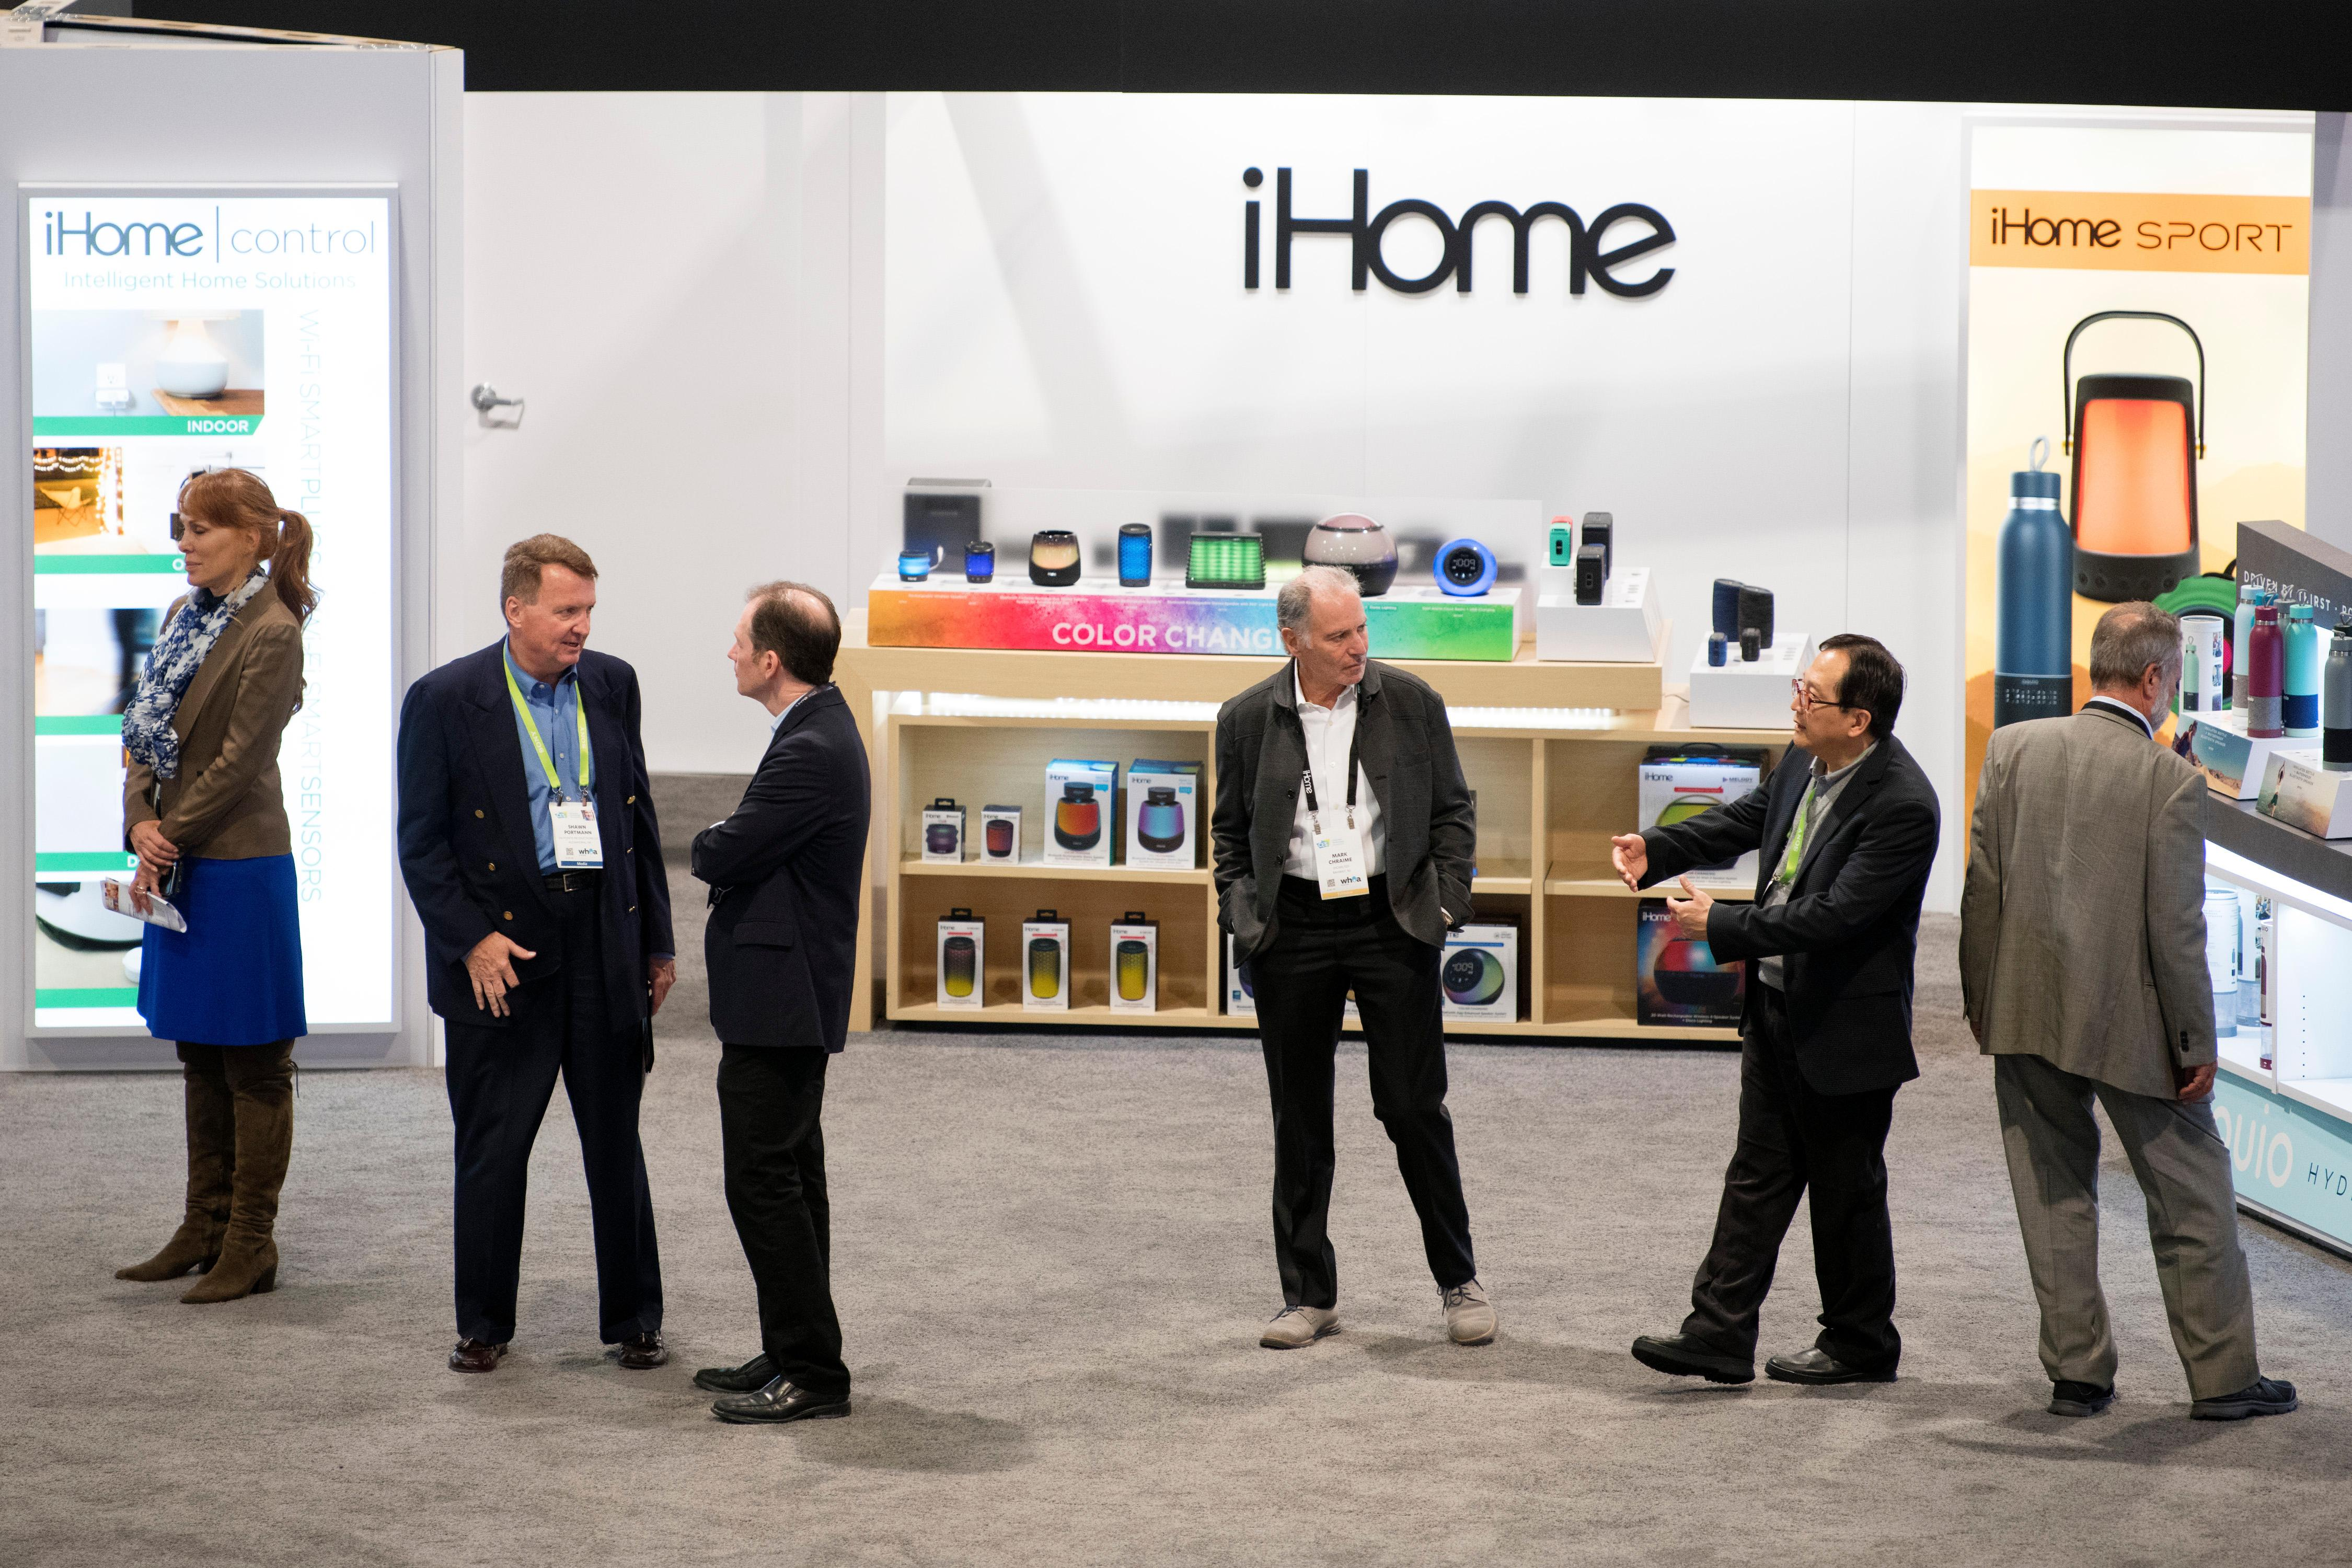 Attendees are seen in the iHome booth during the second day of CES Wednesday, January 10, 2018, at the Las Vegas Convention Center. CREDIT: Sam Morris/Las Vegas News Bureau